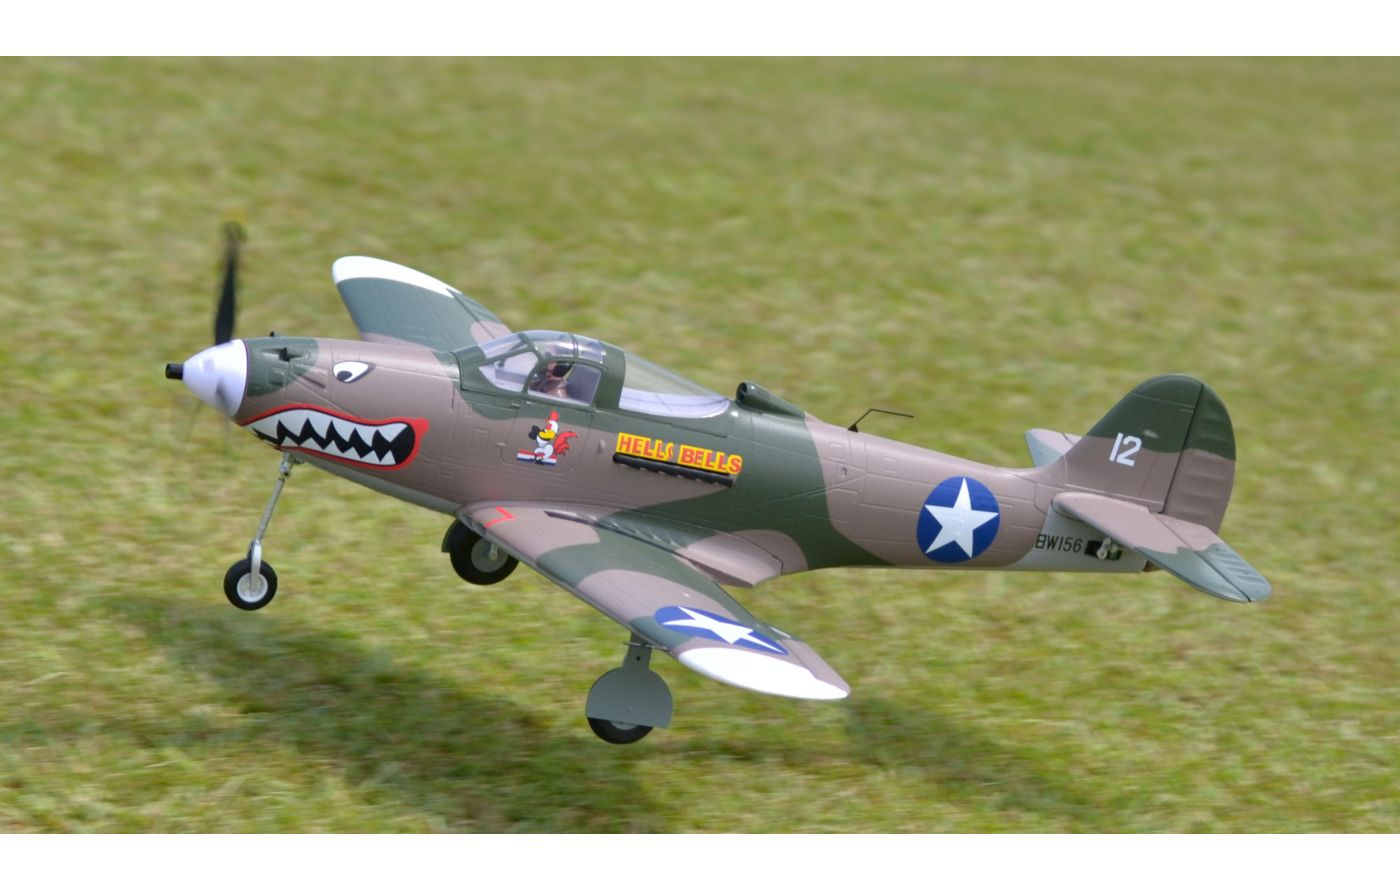 Image for P-39 Hells Bells PNP, 980mm: Camo from Force RC